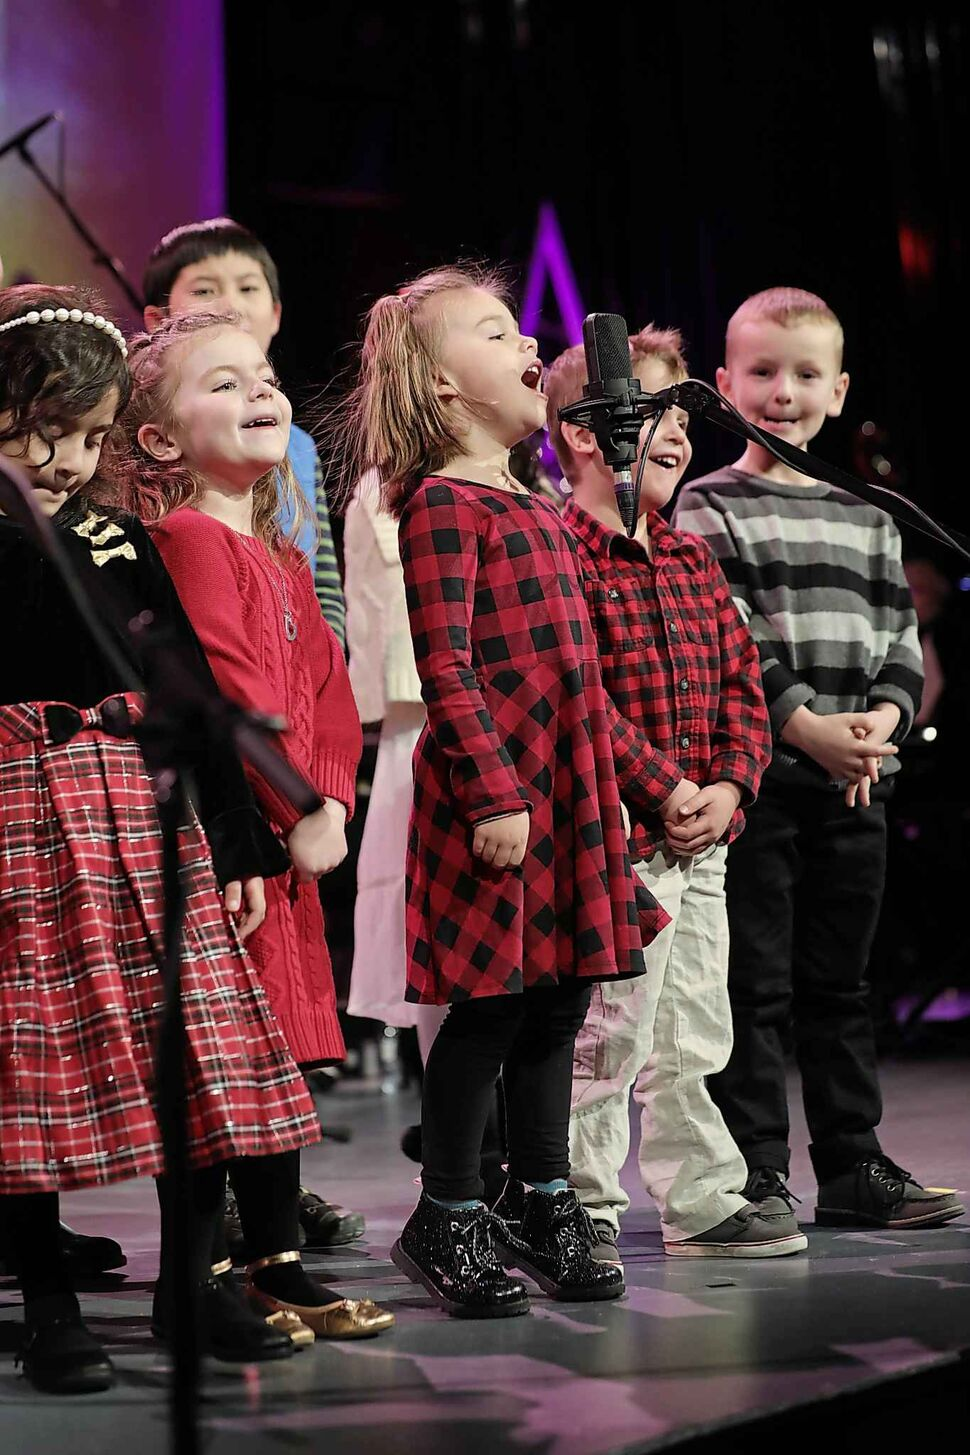 Grant Memorial Church hosts a festive concert with new and classic Christmas music, presented by their community Christmas choir, youth choir and our King's Kids Choir on Dec. 15. (Ruth Bonneville / Winnipeg Free Press)